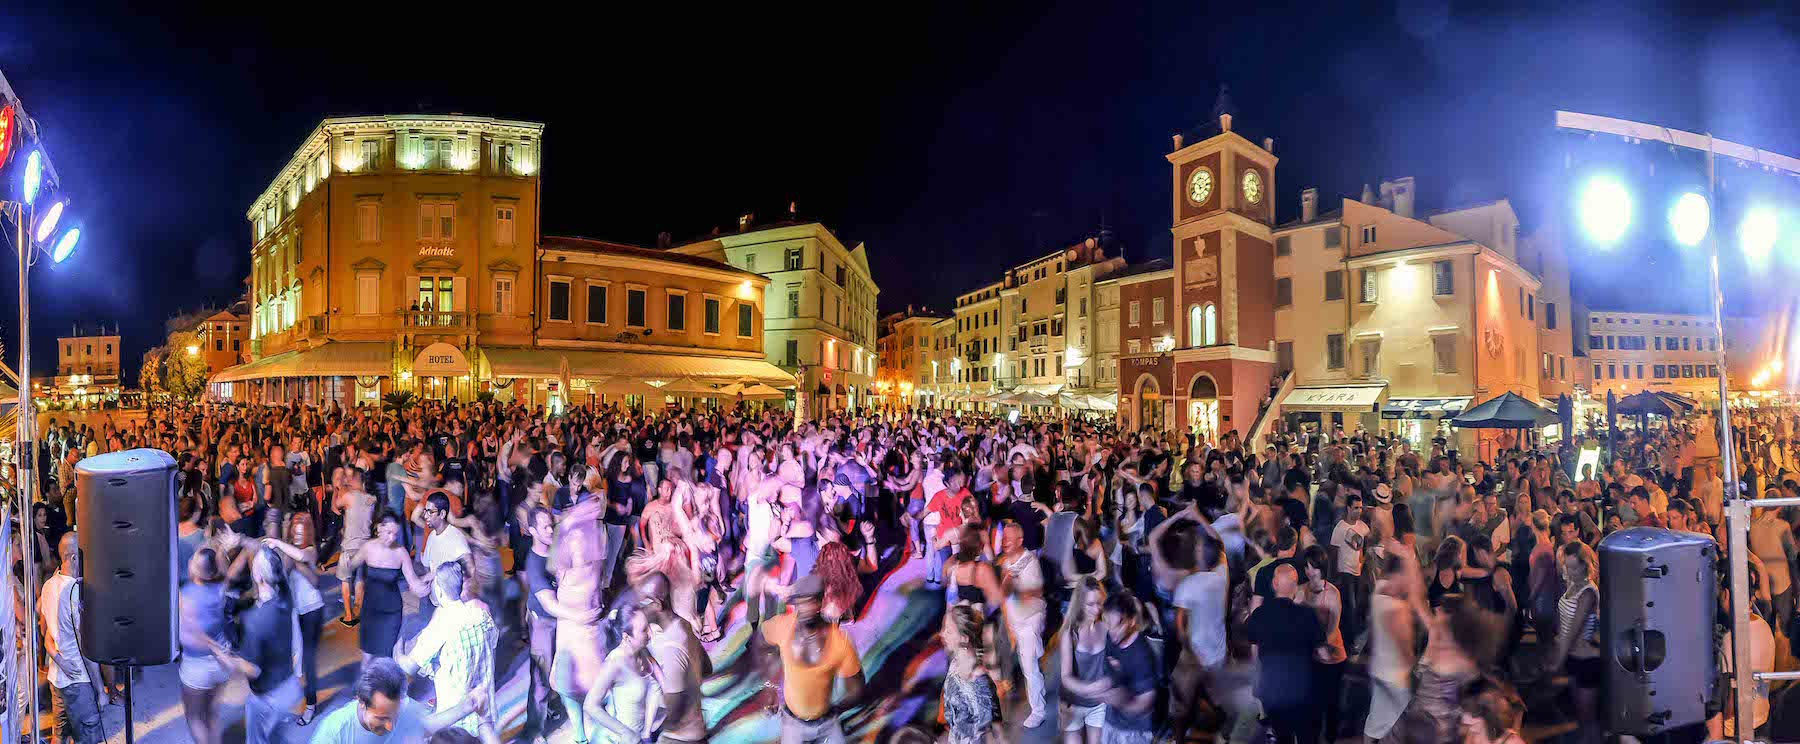 8 things you should know before you come to Summer Sensual Days and Croatian Summer Salsa Festival